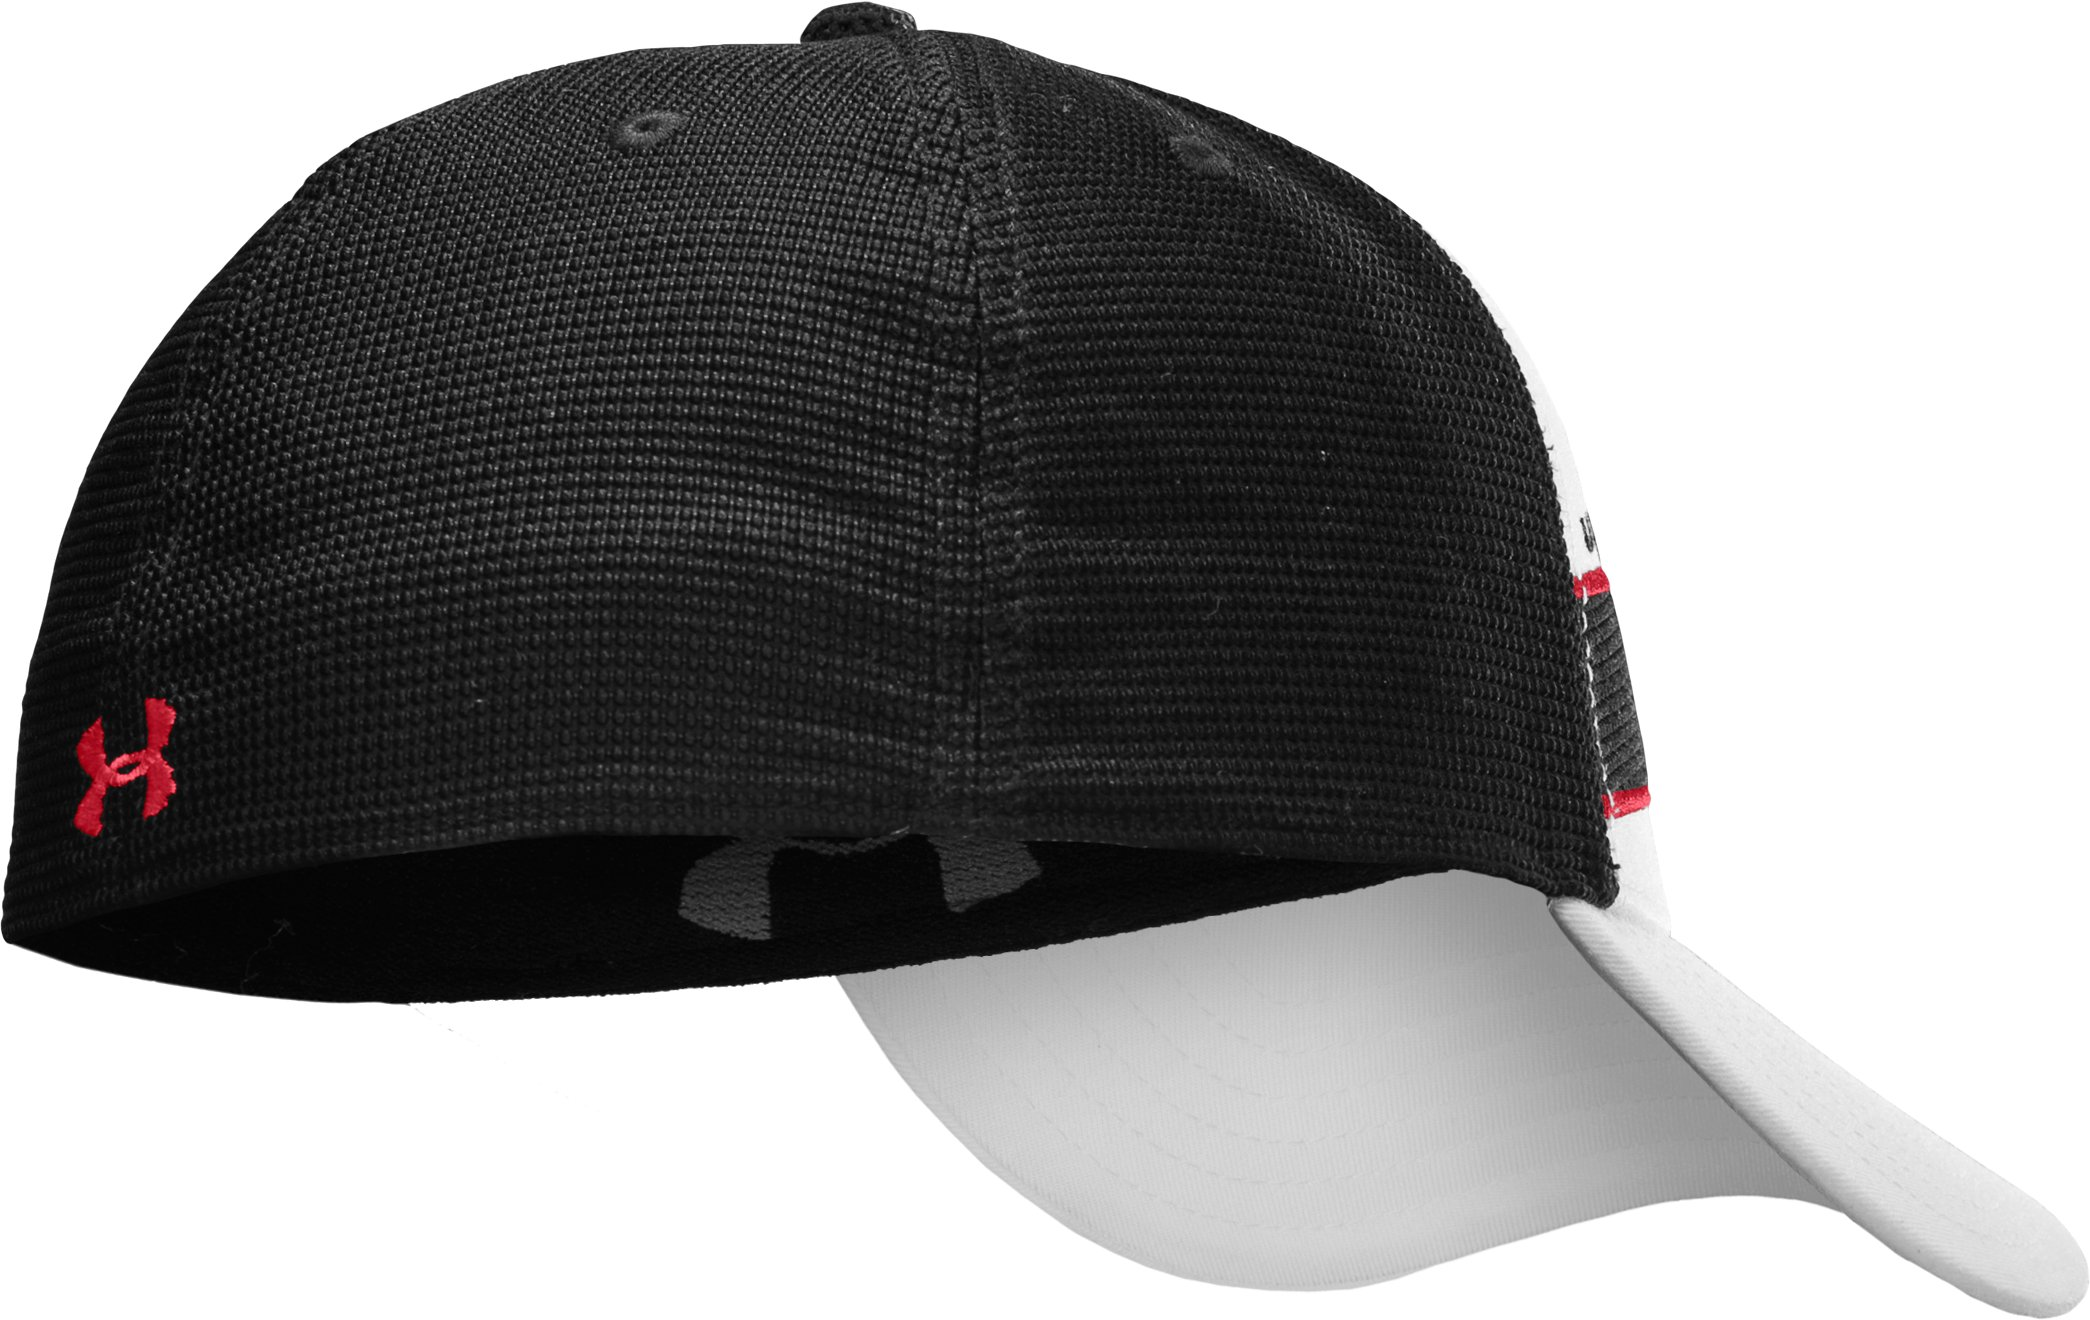 Men's Dauntless Stretch Fit Cap, White, zoomed image